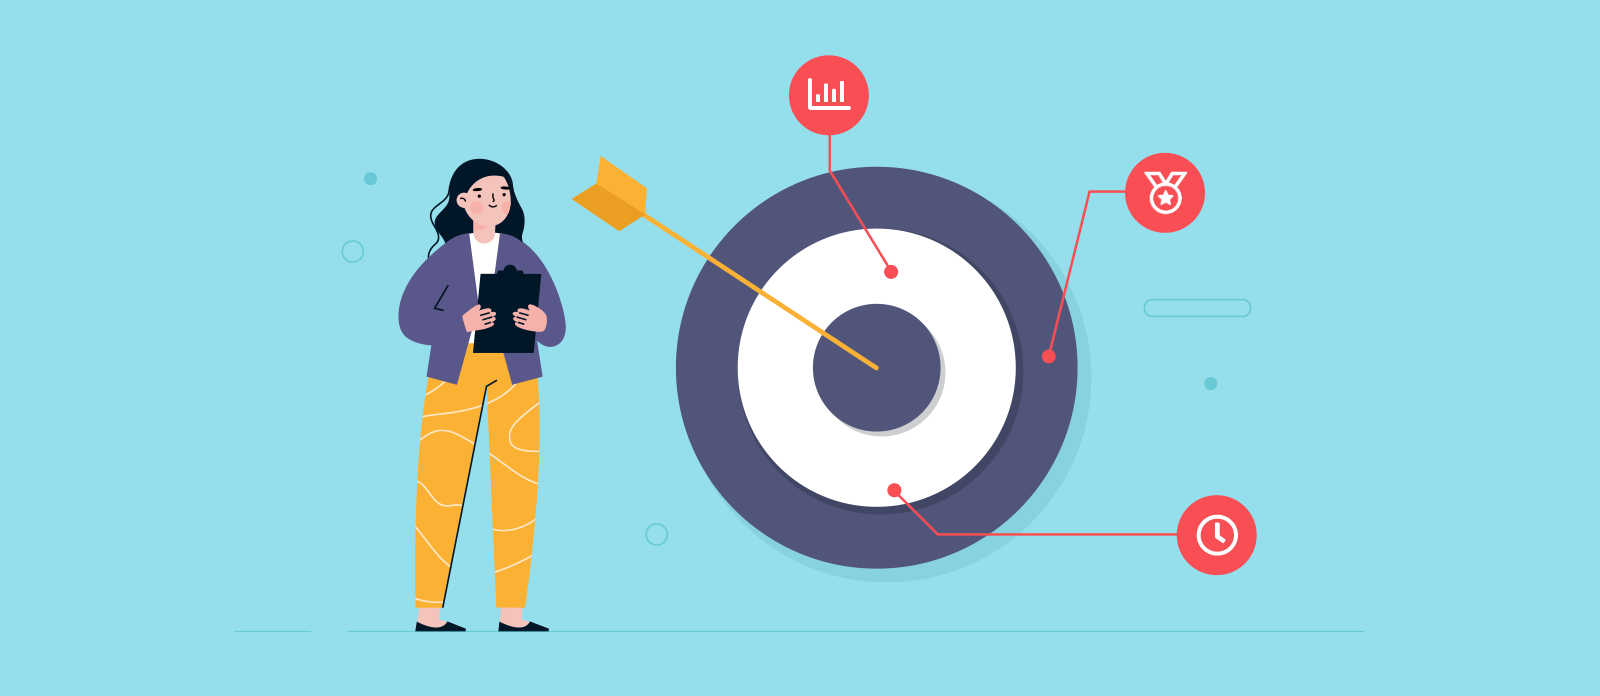 Illustration of a woman standing next to a target with SMART goal icons represented as arrows